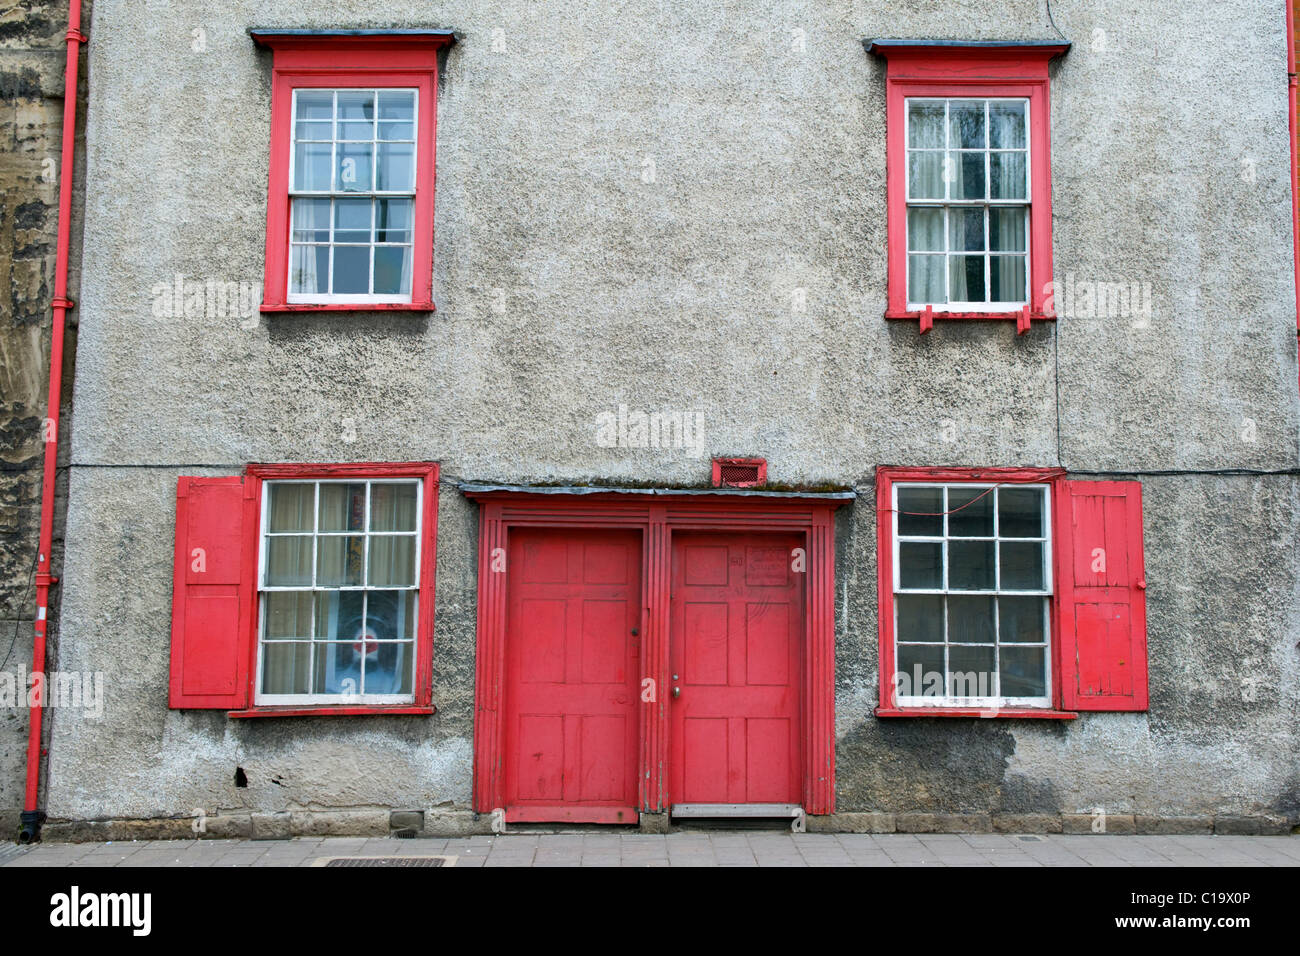 Red Painted Front Door And Windows On Terraced Houses In Oxford, UK